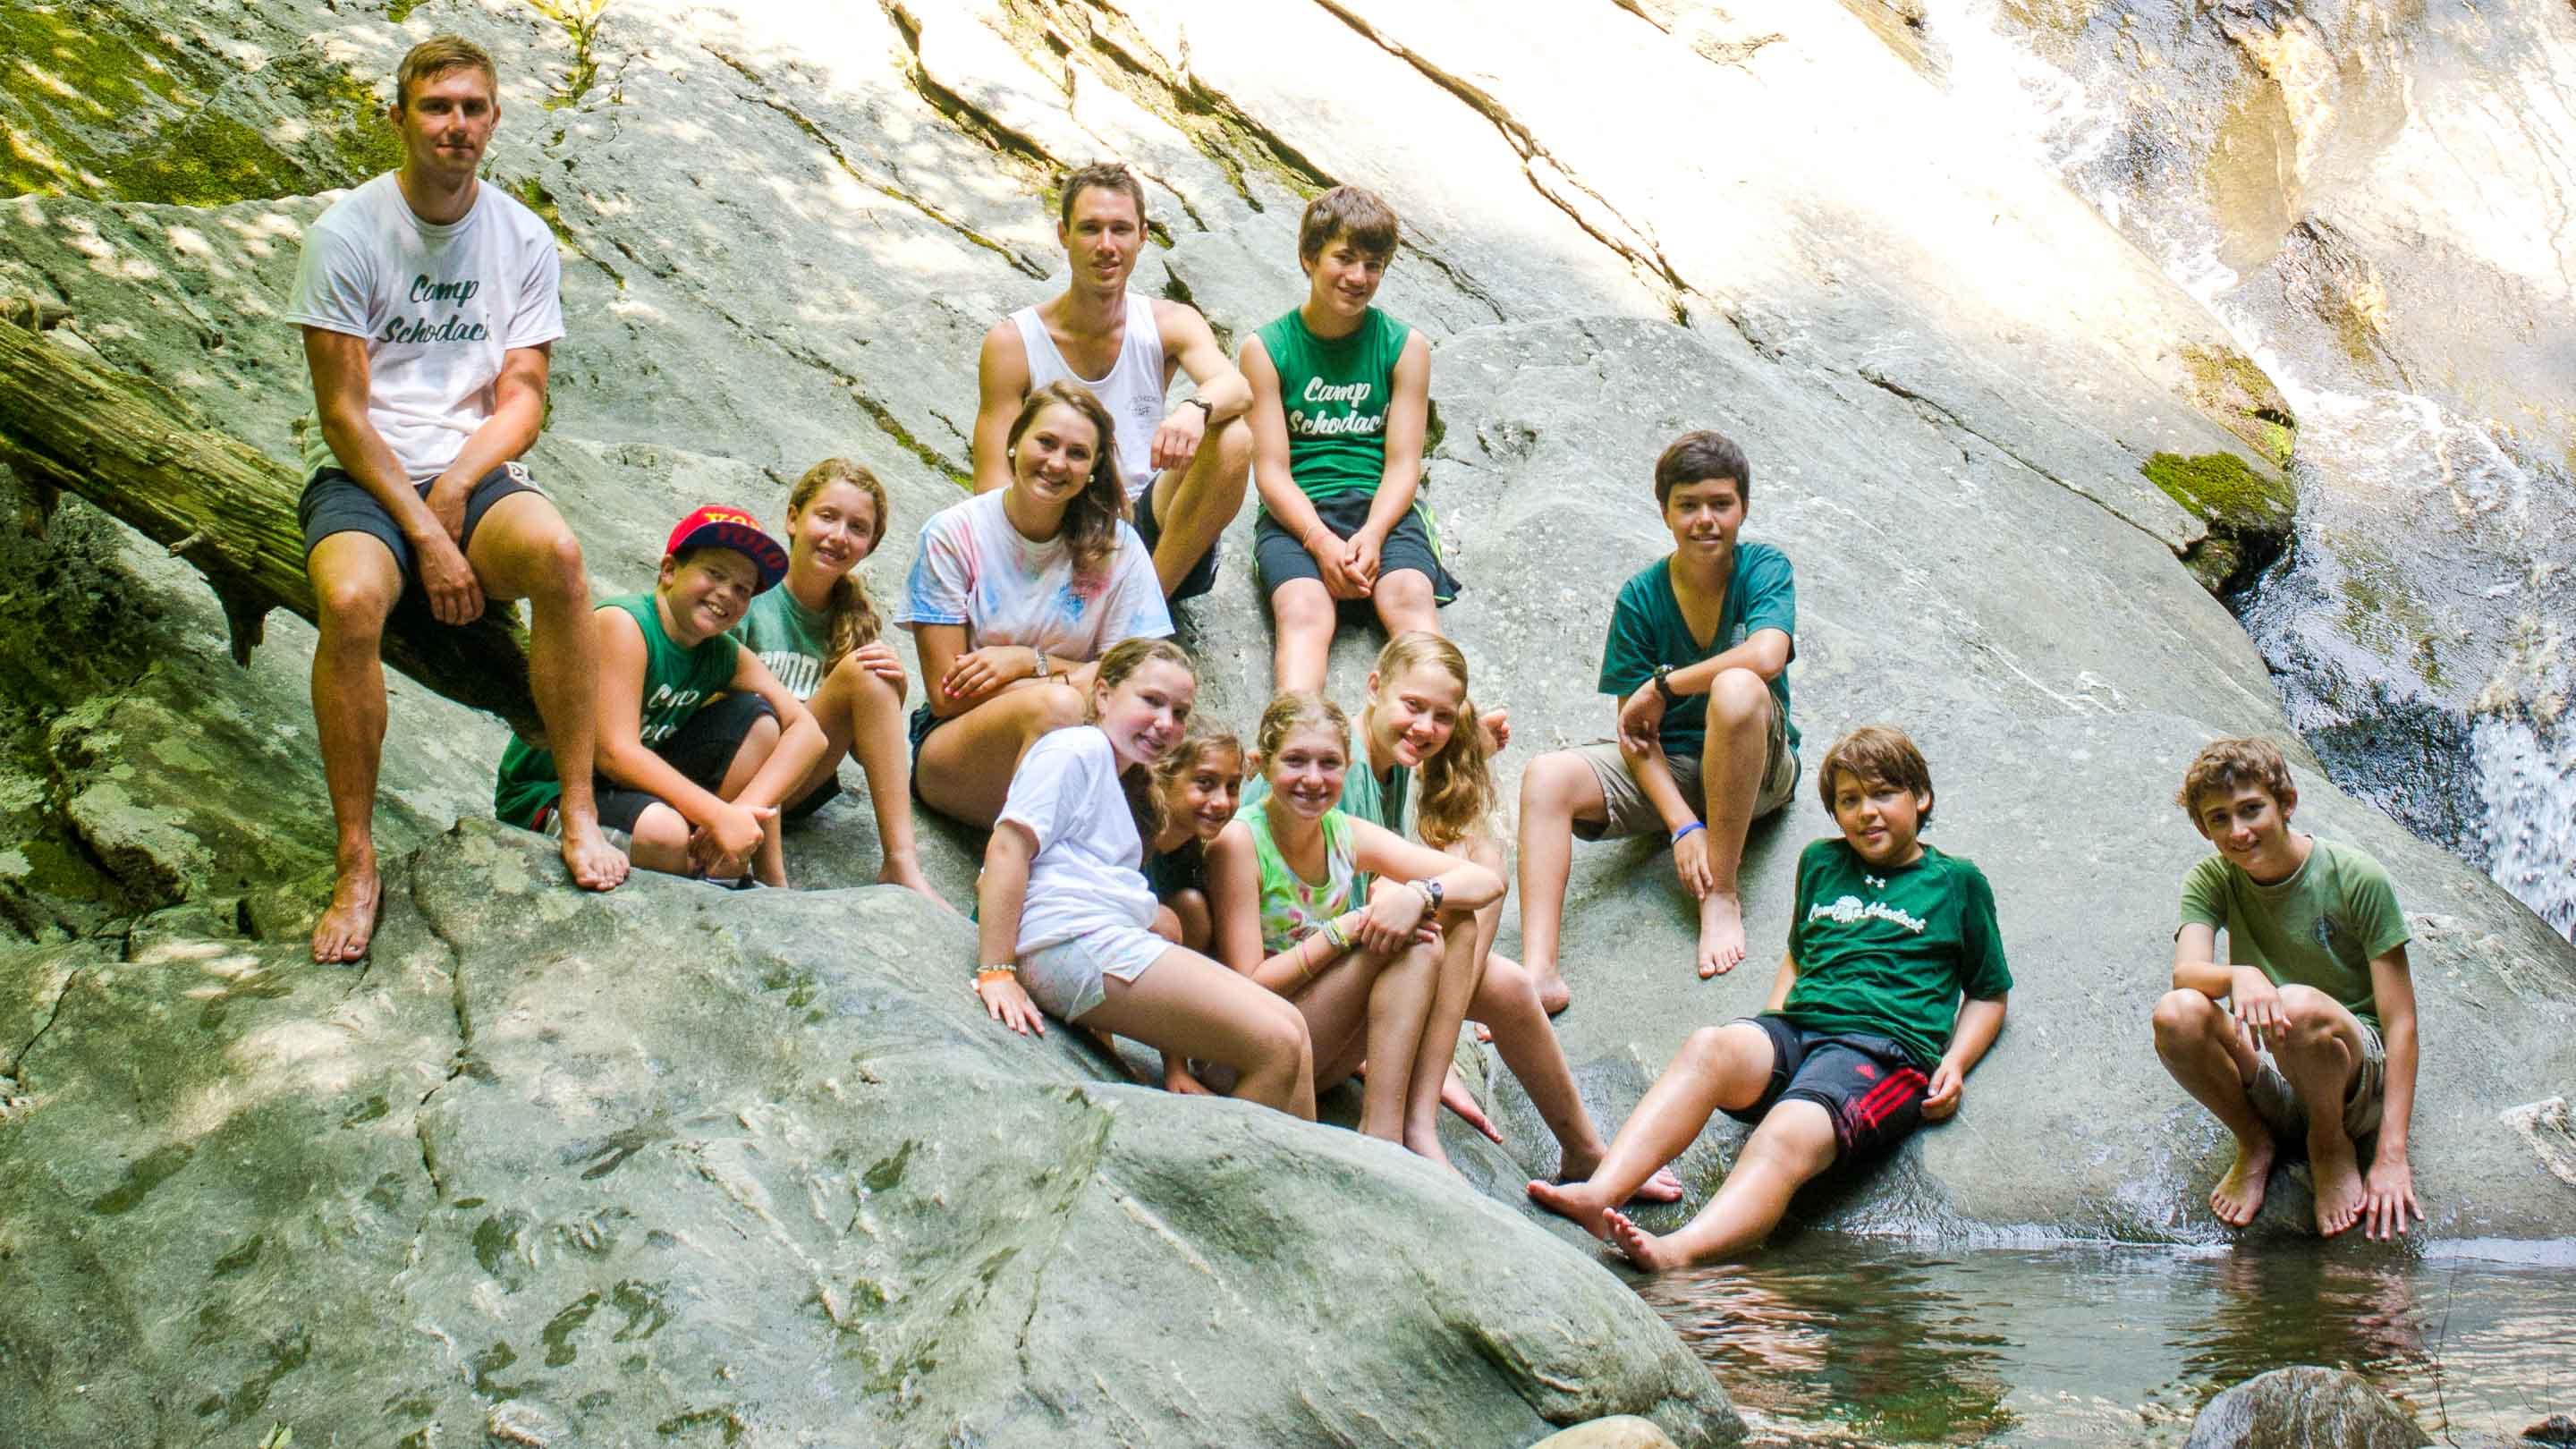 Group of campers sits next to rock pool